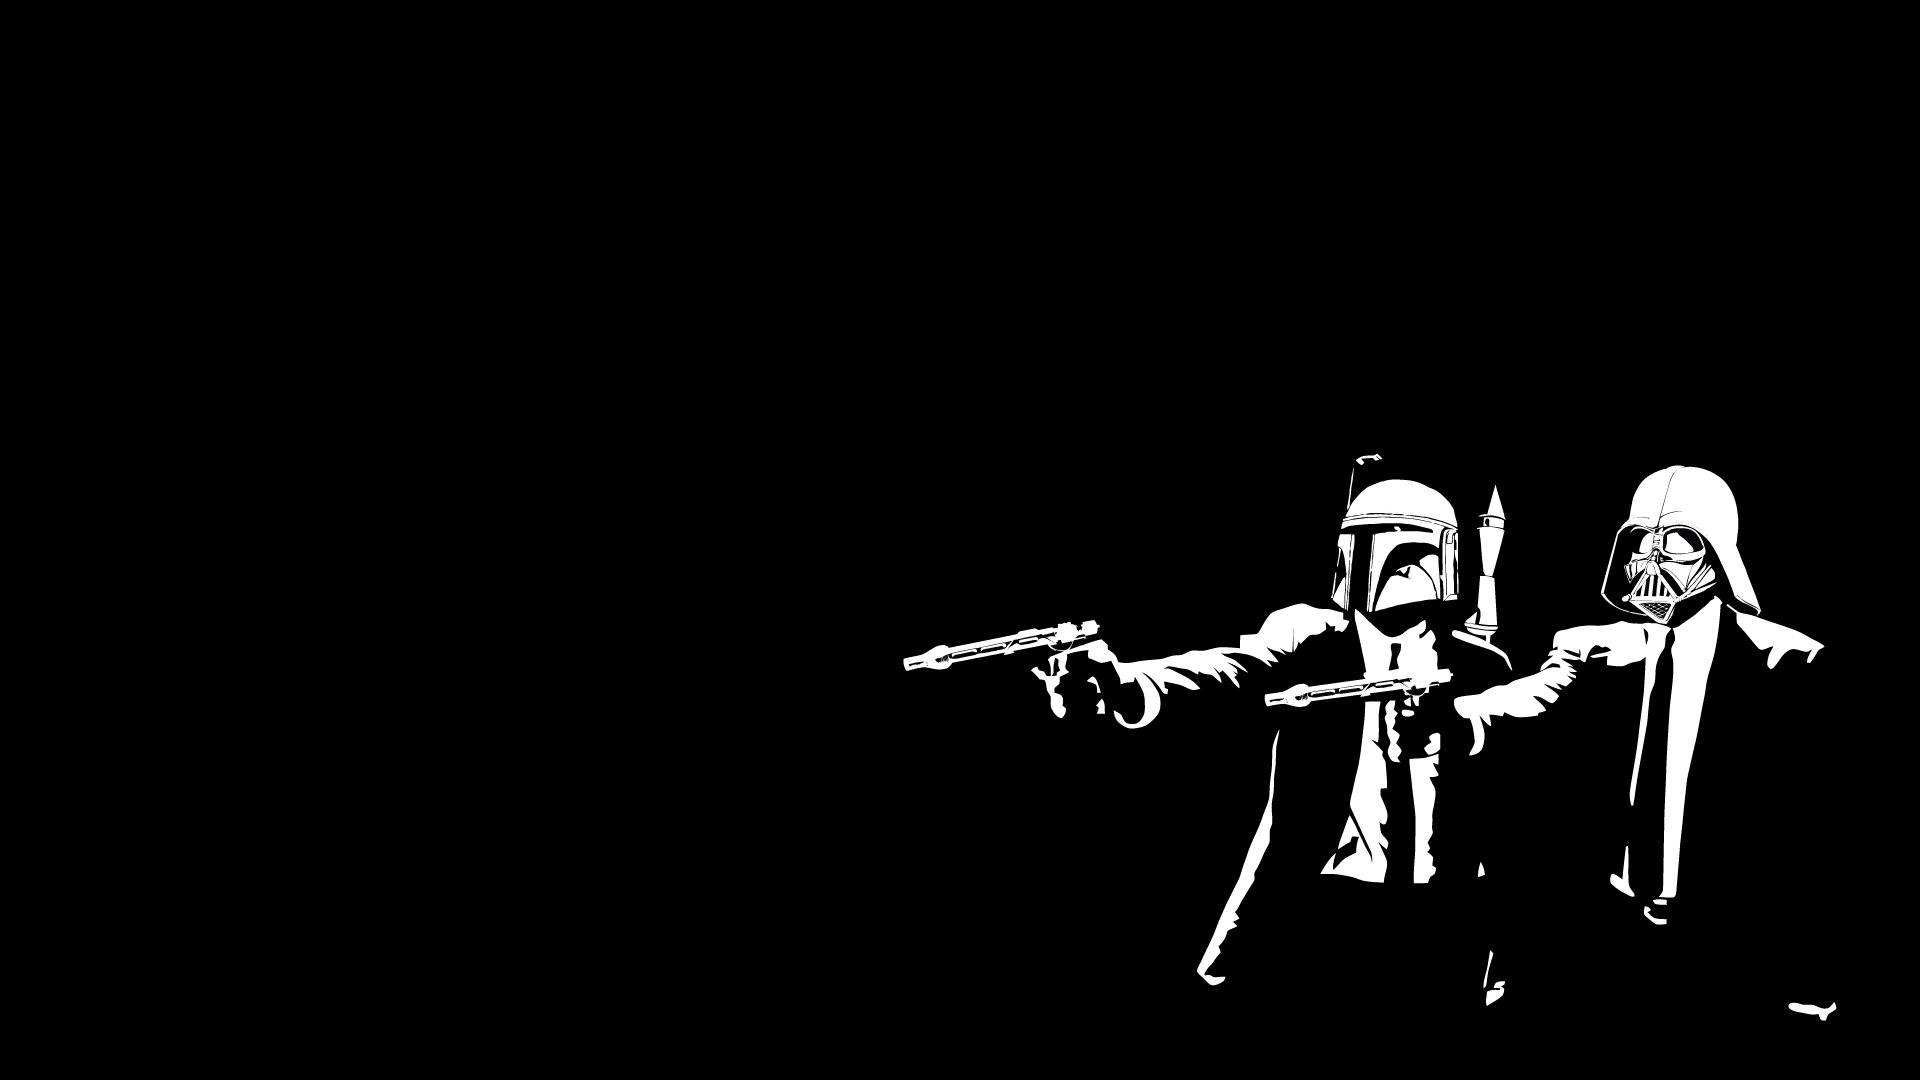 Cool Wallpaper Black And White Free Download